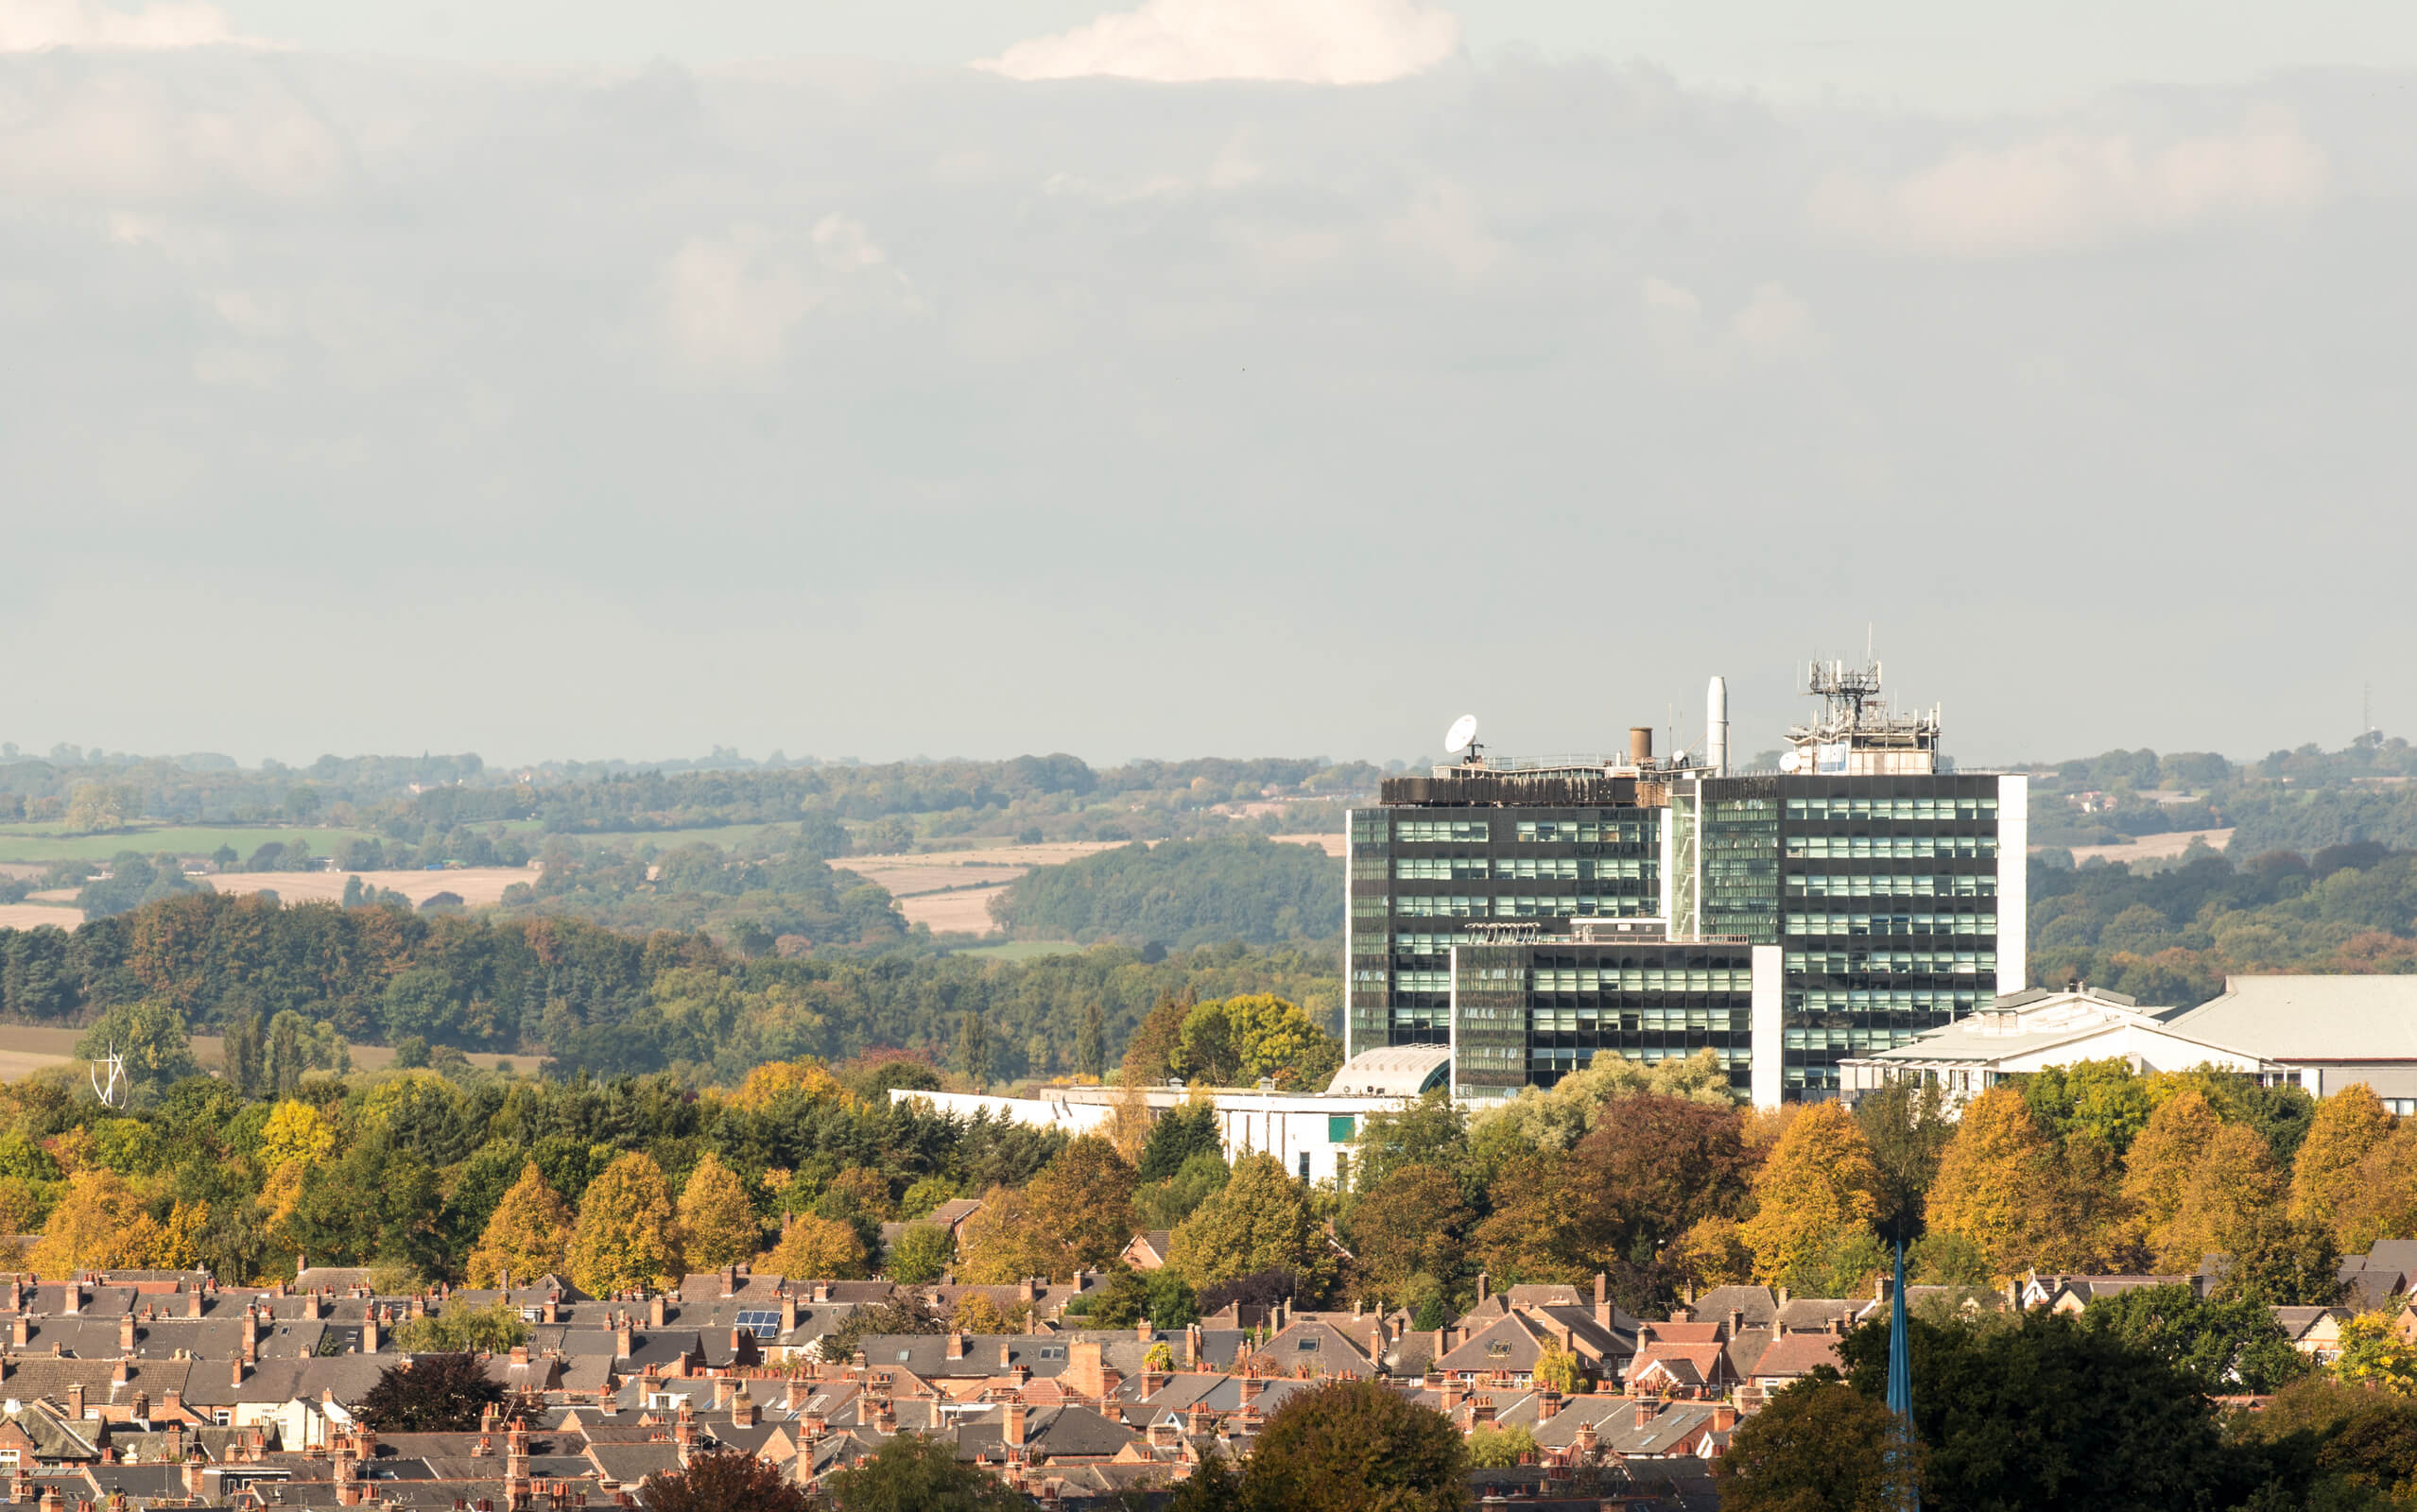 A wide landscape shot of Derby with the University building and greenery